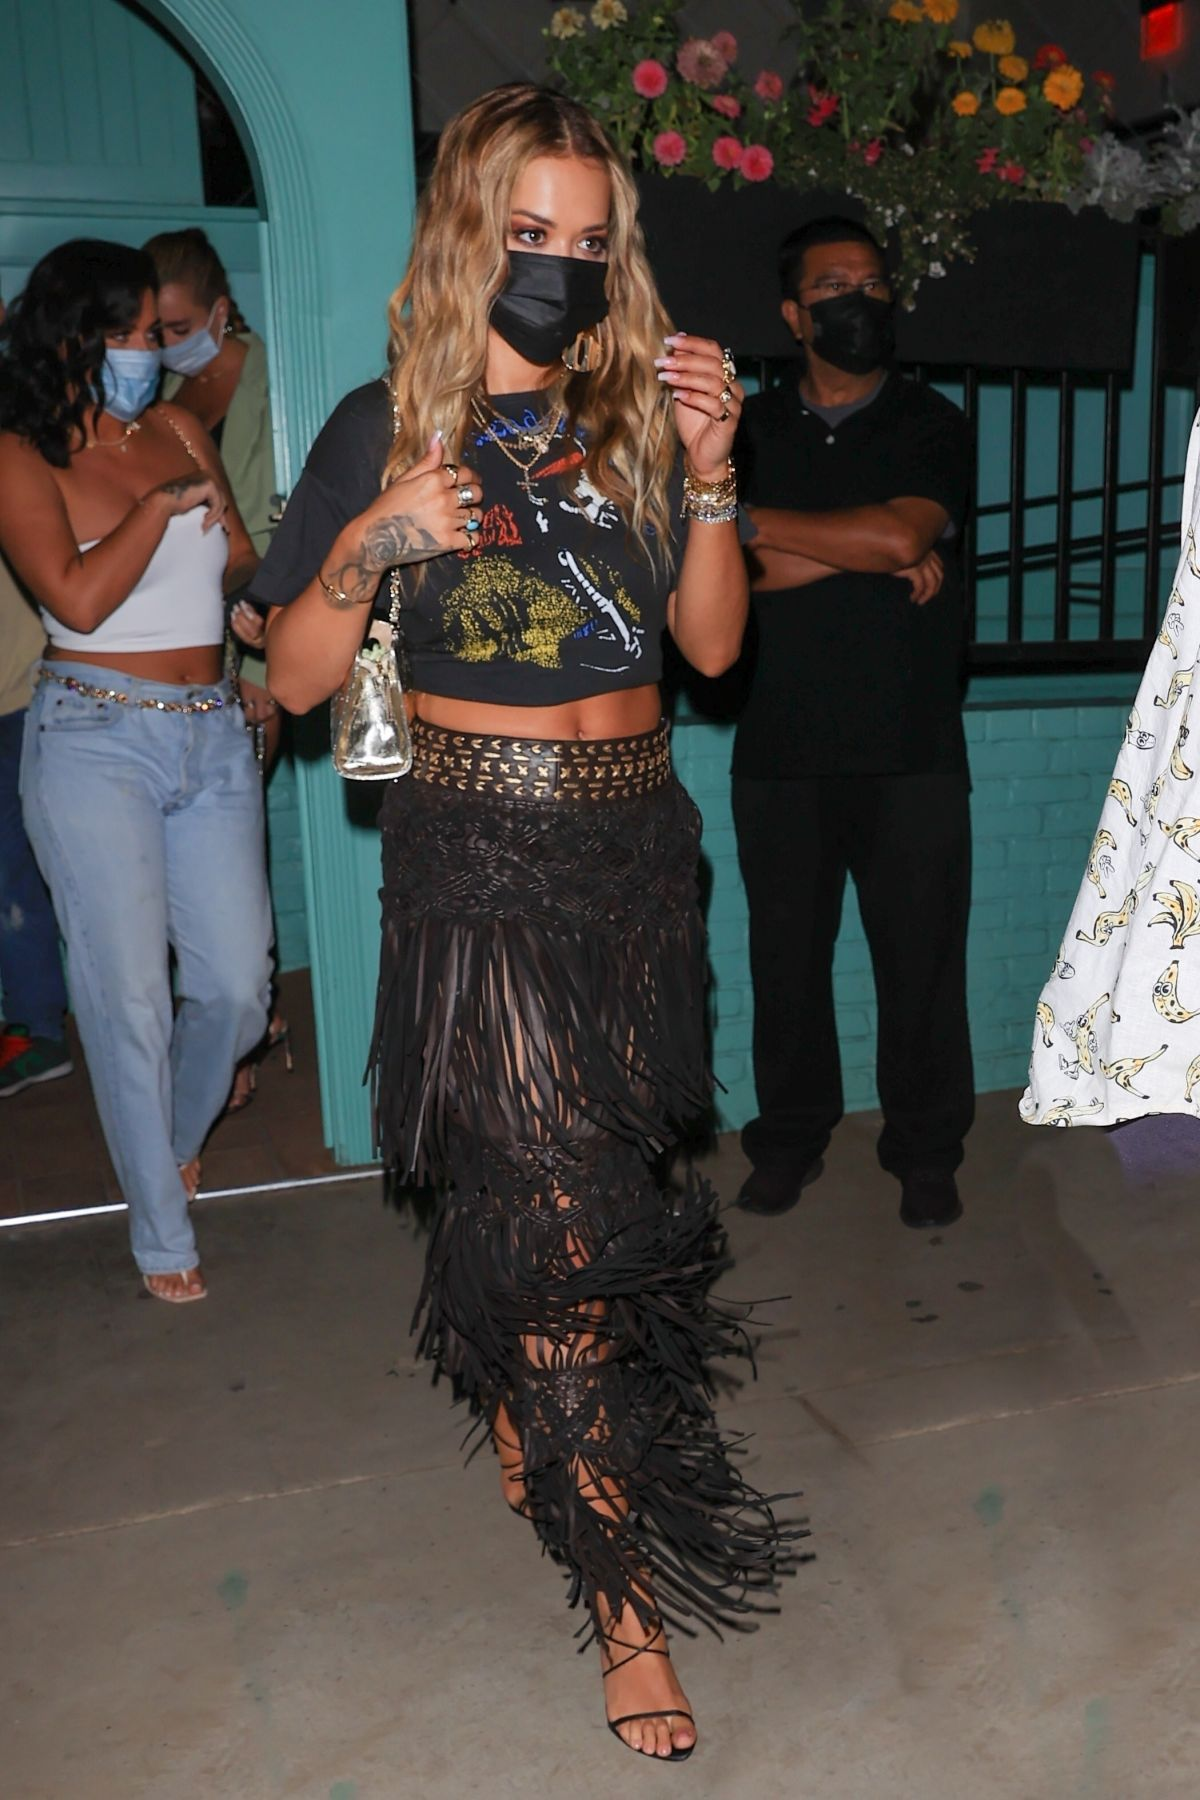 rita-ora-wears-roberto-cavalli-fringe-skirt-out-in-west-hollywood-july-16-2021